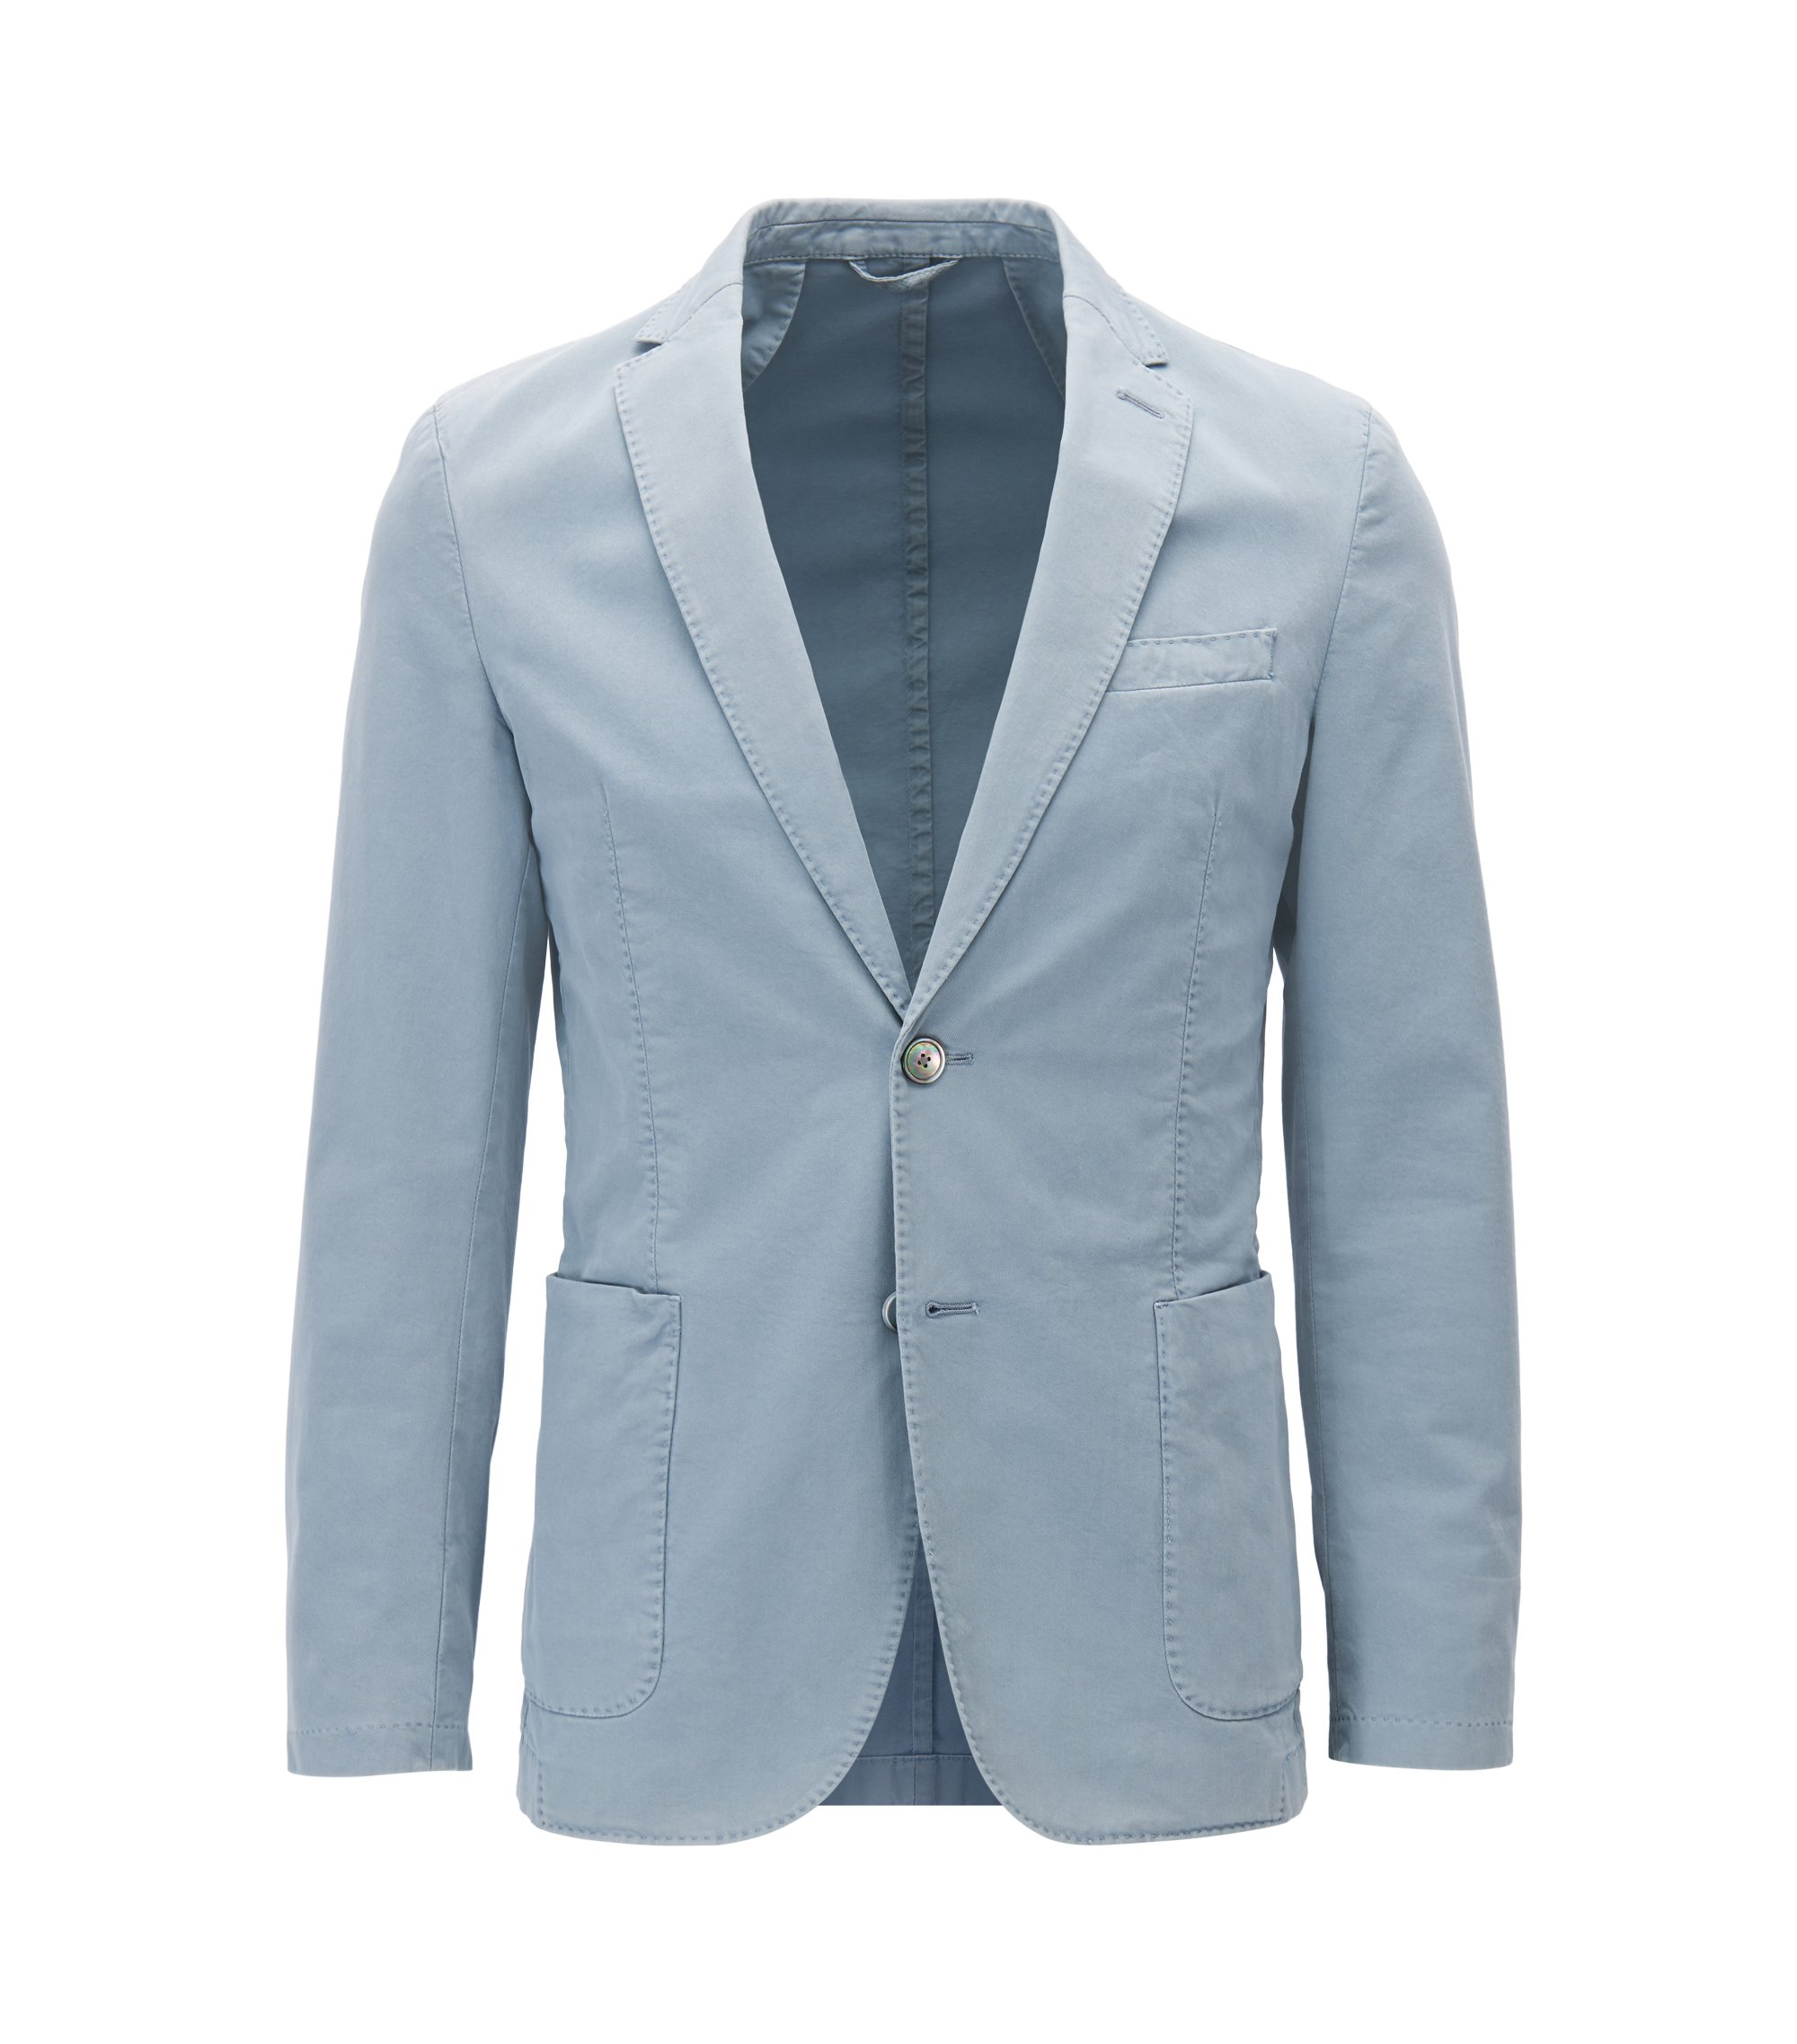 Garment-Dyed Stretch Cotton Sport Coat, Slim Fit | Hanry D, Open Grey